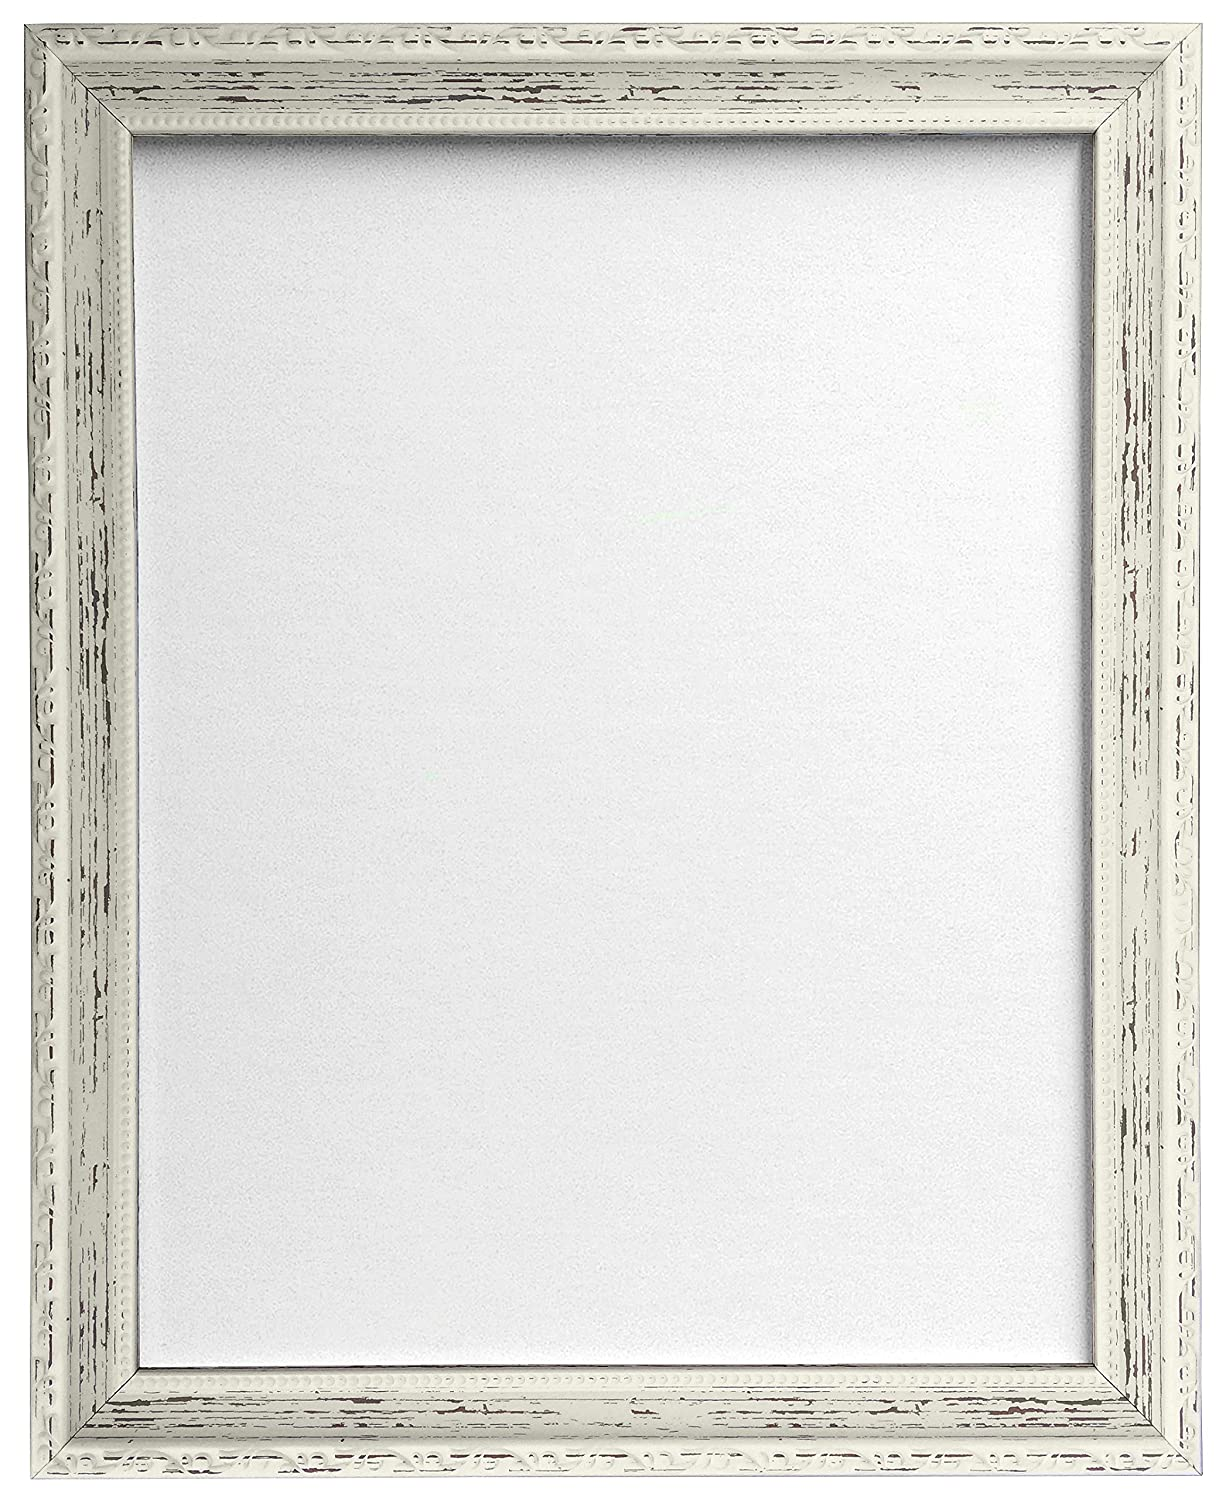 frames by post shabby chic picture photo and poster frame distressed white a3 amazoncouk kitchen home - White Vintage Picture Frames